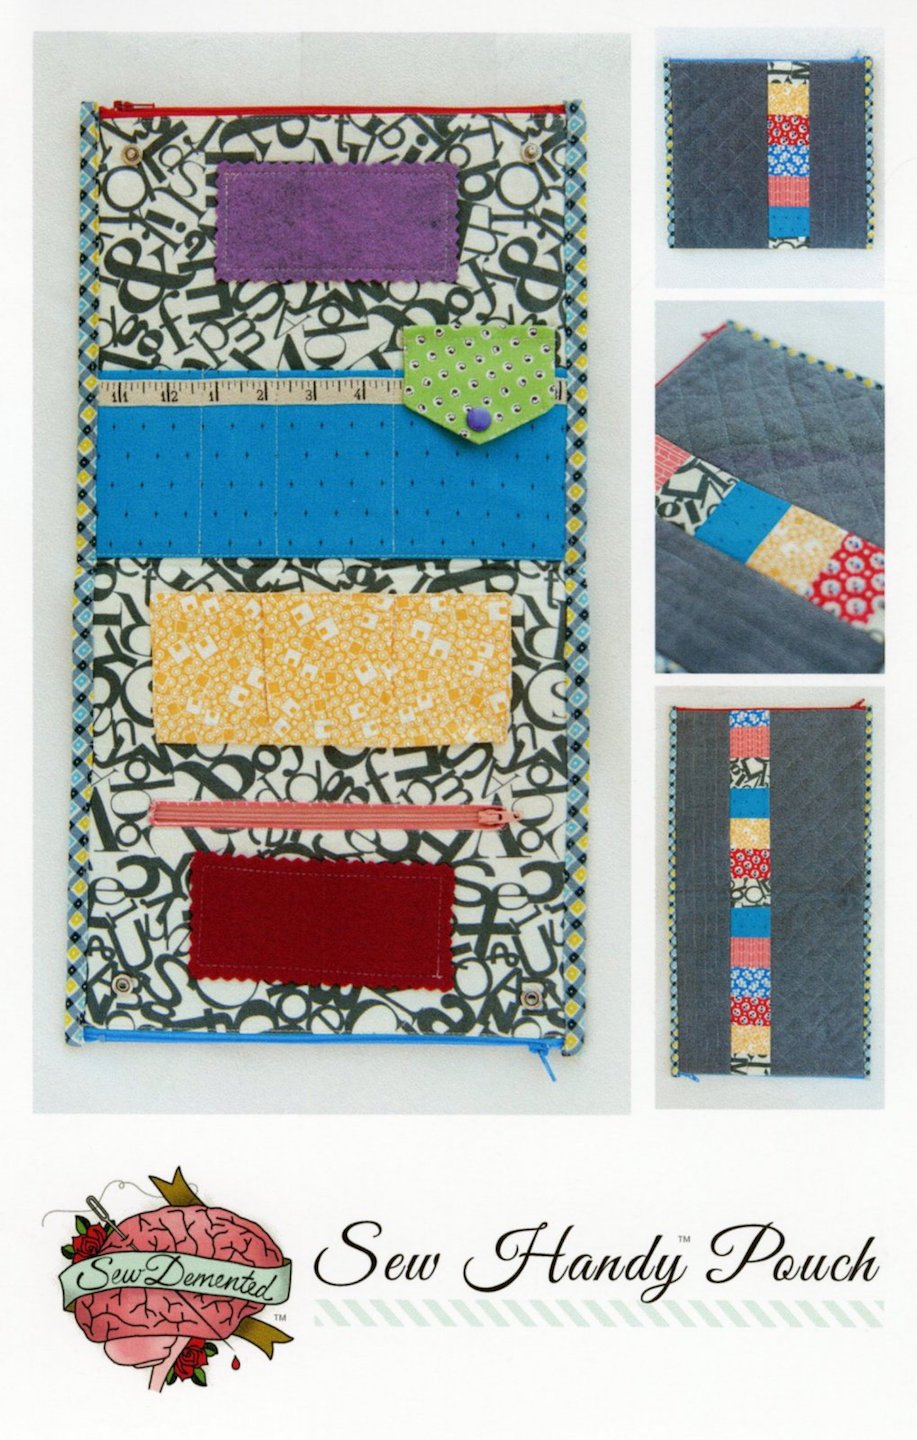 Sew Handy Pouch - Sew Demented